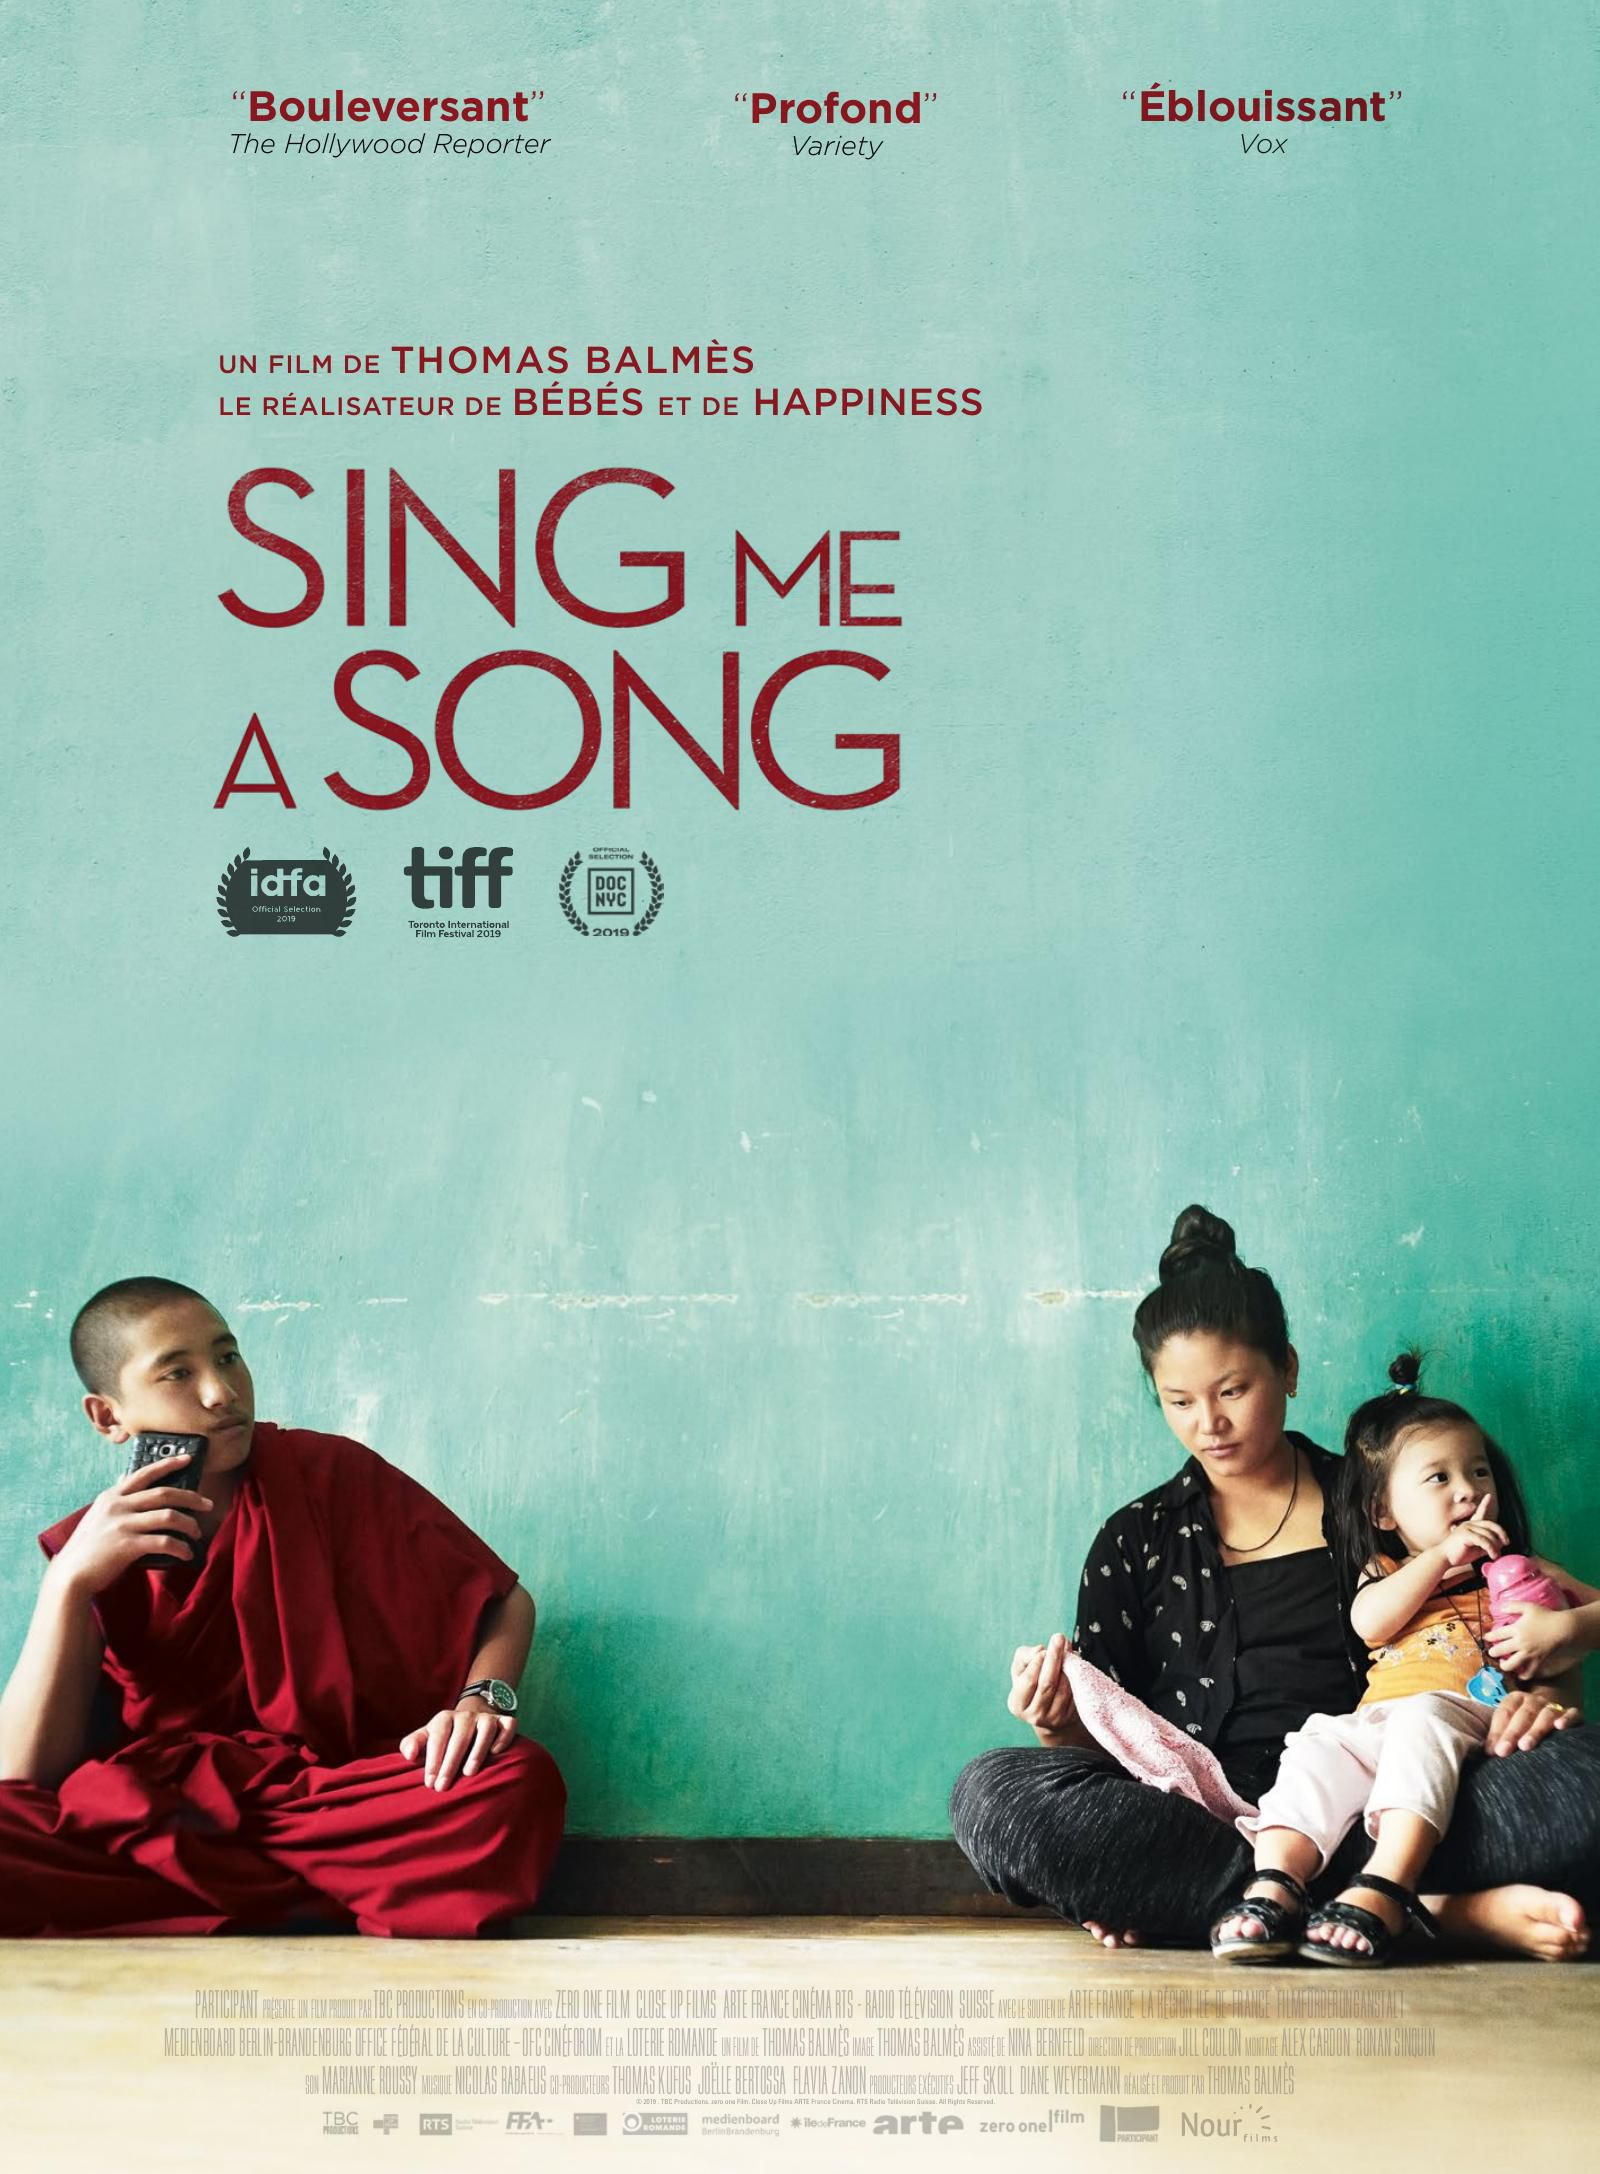 Sing Me a Song - Documentaire (2020) streaming VF gratuit complet